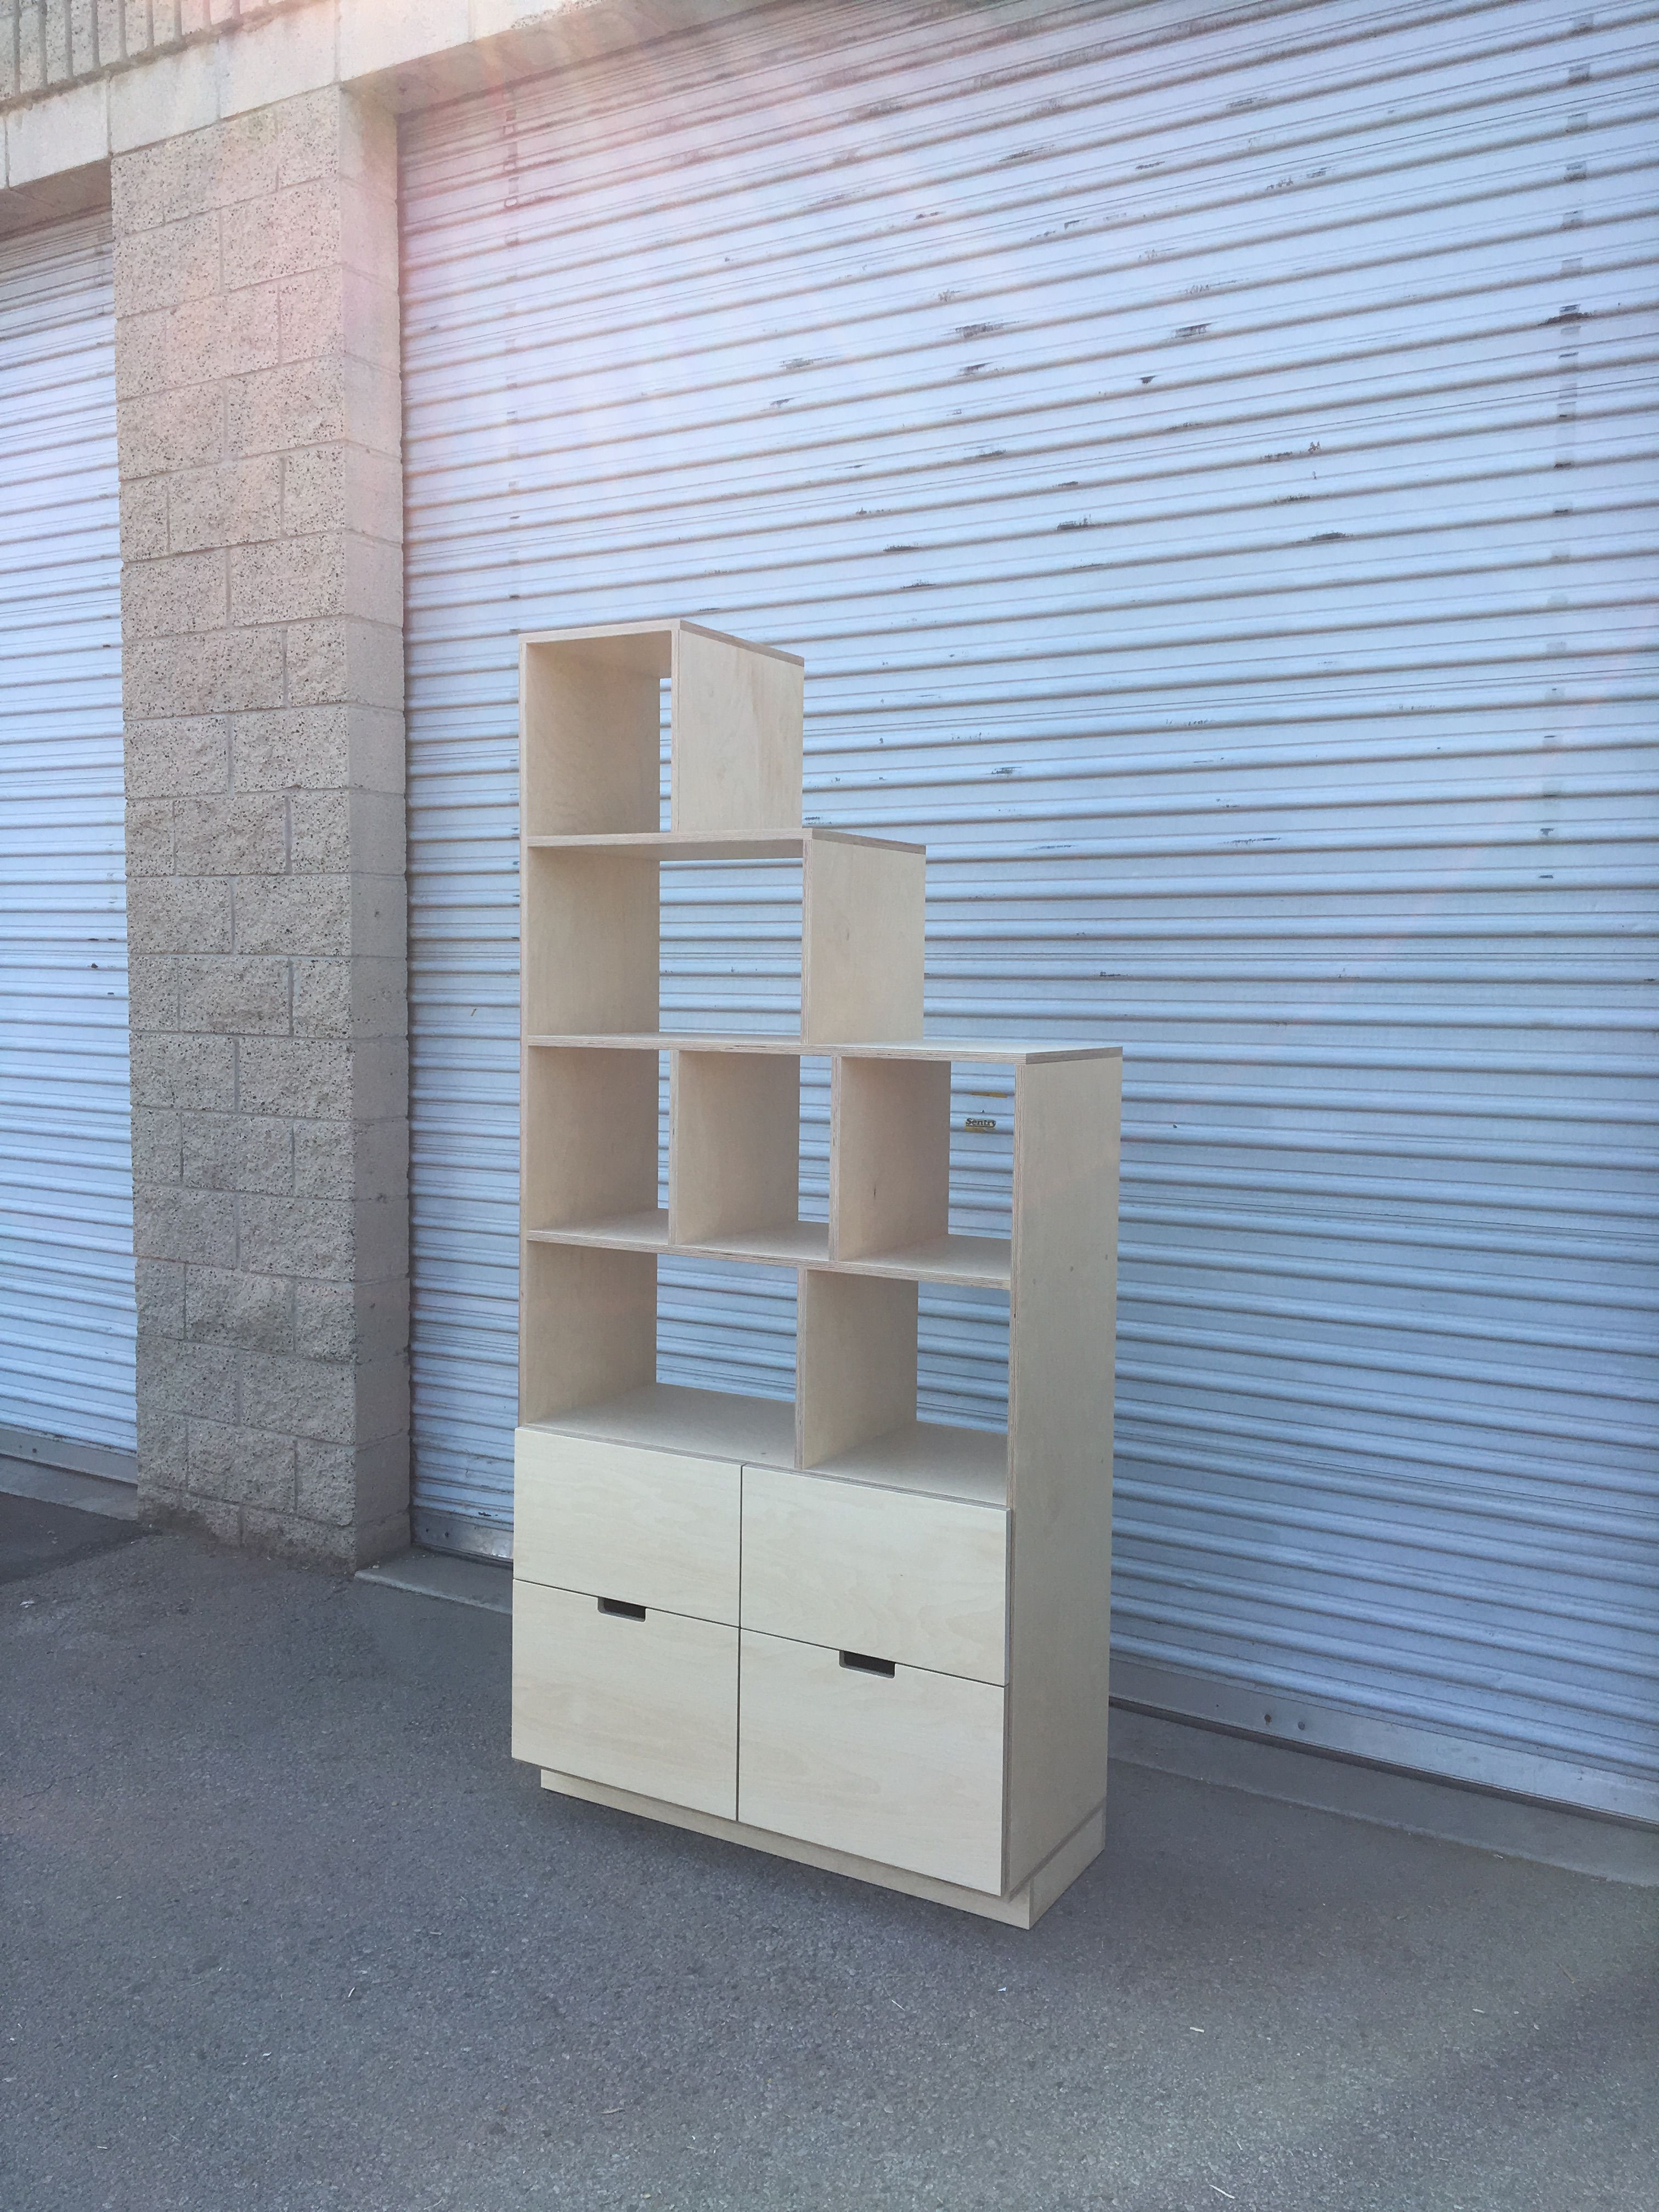 Shelving Unit with Drawers product image 1